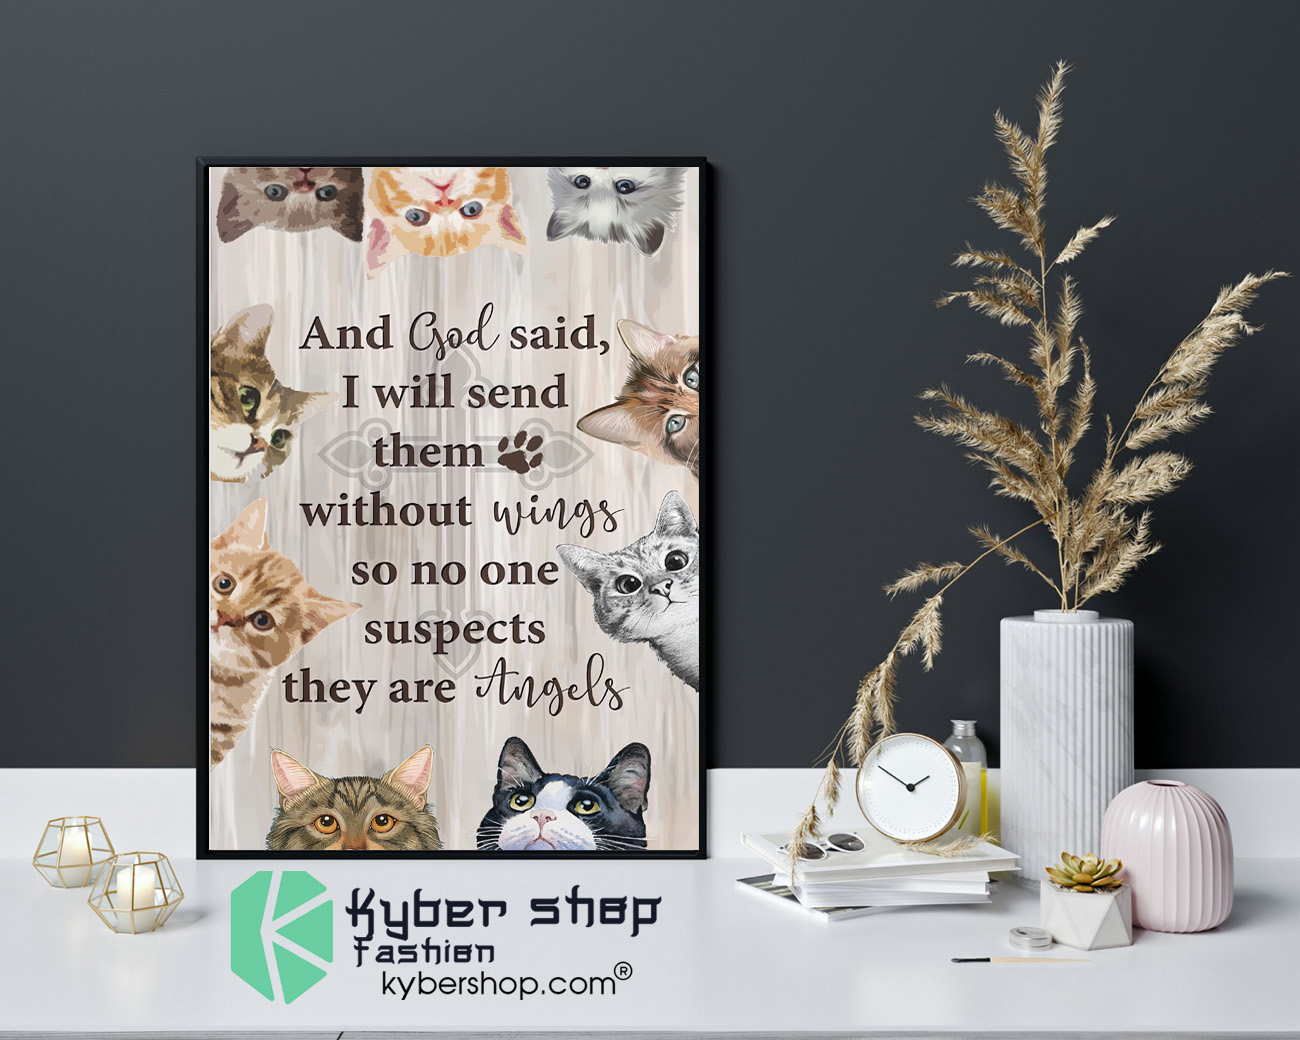 Cat and god said I will send them without wings so no one suspects they are angels poster 4